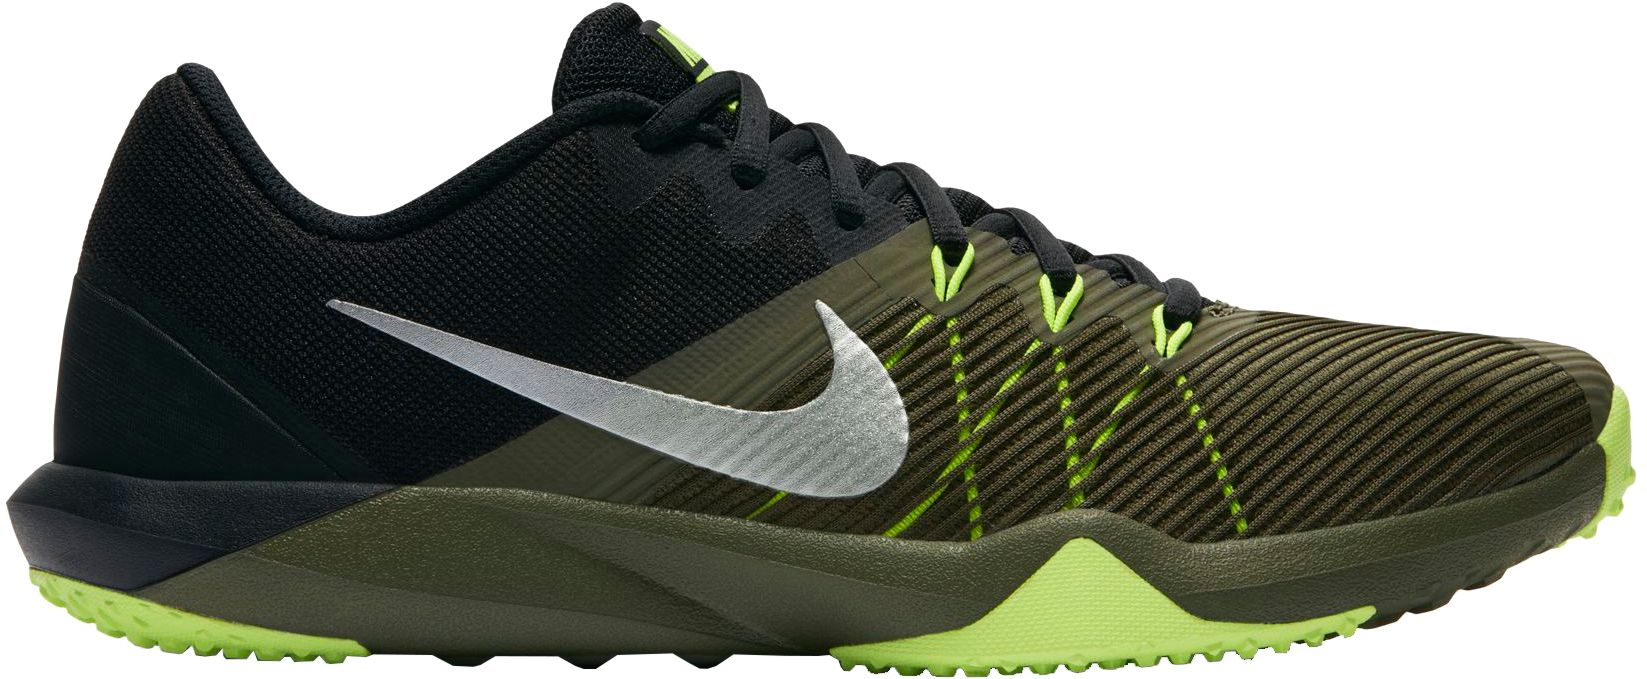 discount low shipping fee Nike Retaliation TR Men's ... Cross Training Shoes best wholesale F4ADa